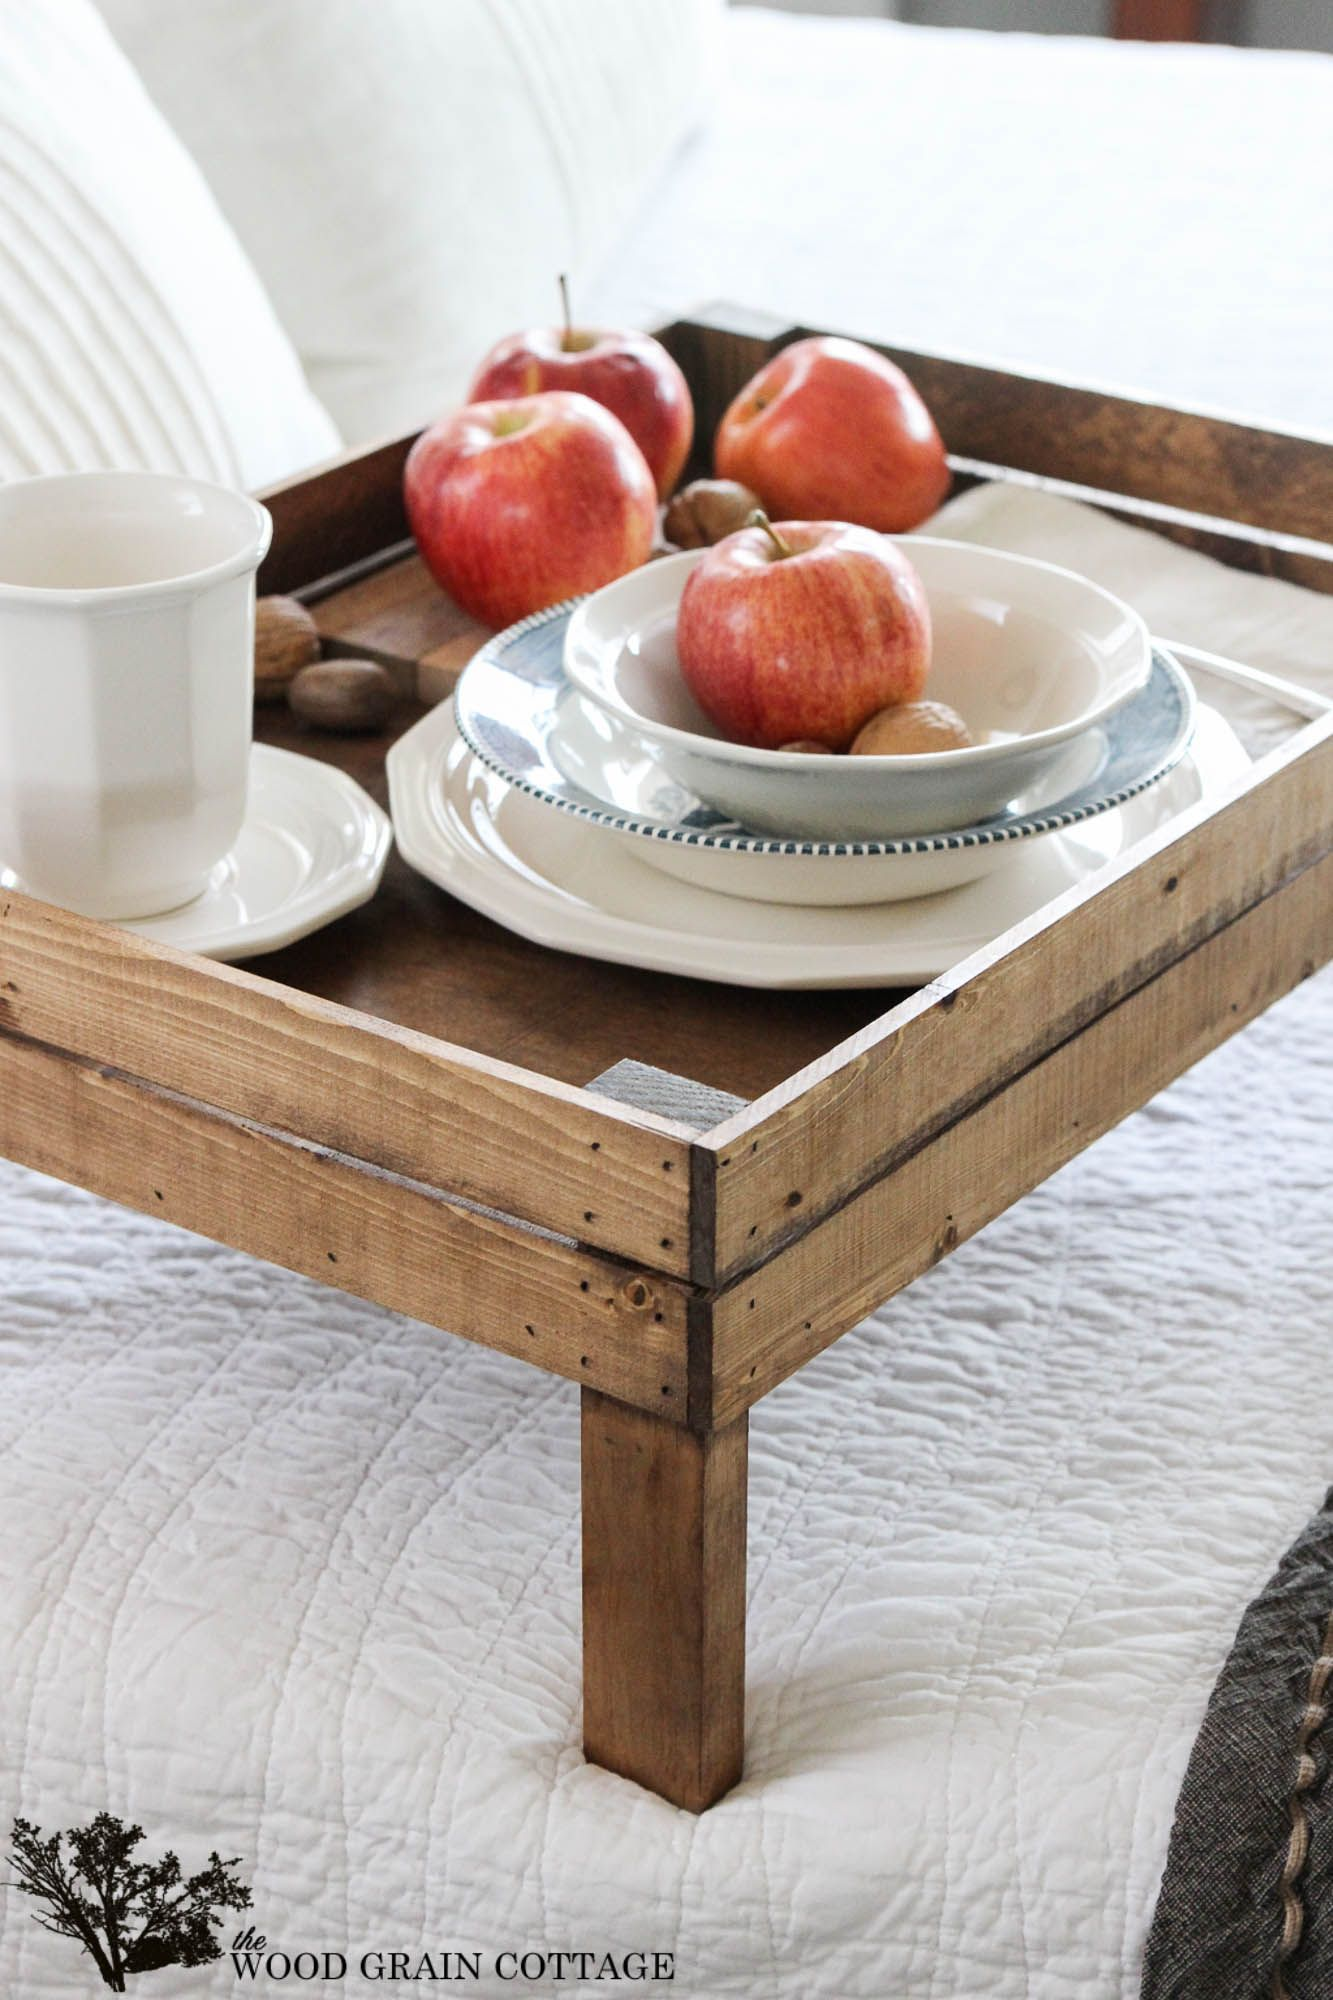 Breakfast Trays For Bed Fascinating Breakfast In Bed Tray  Bed Time Routine Bed Tray And Trays Inspiration Design